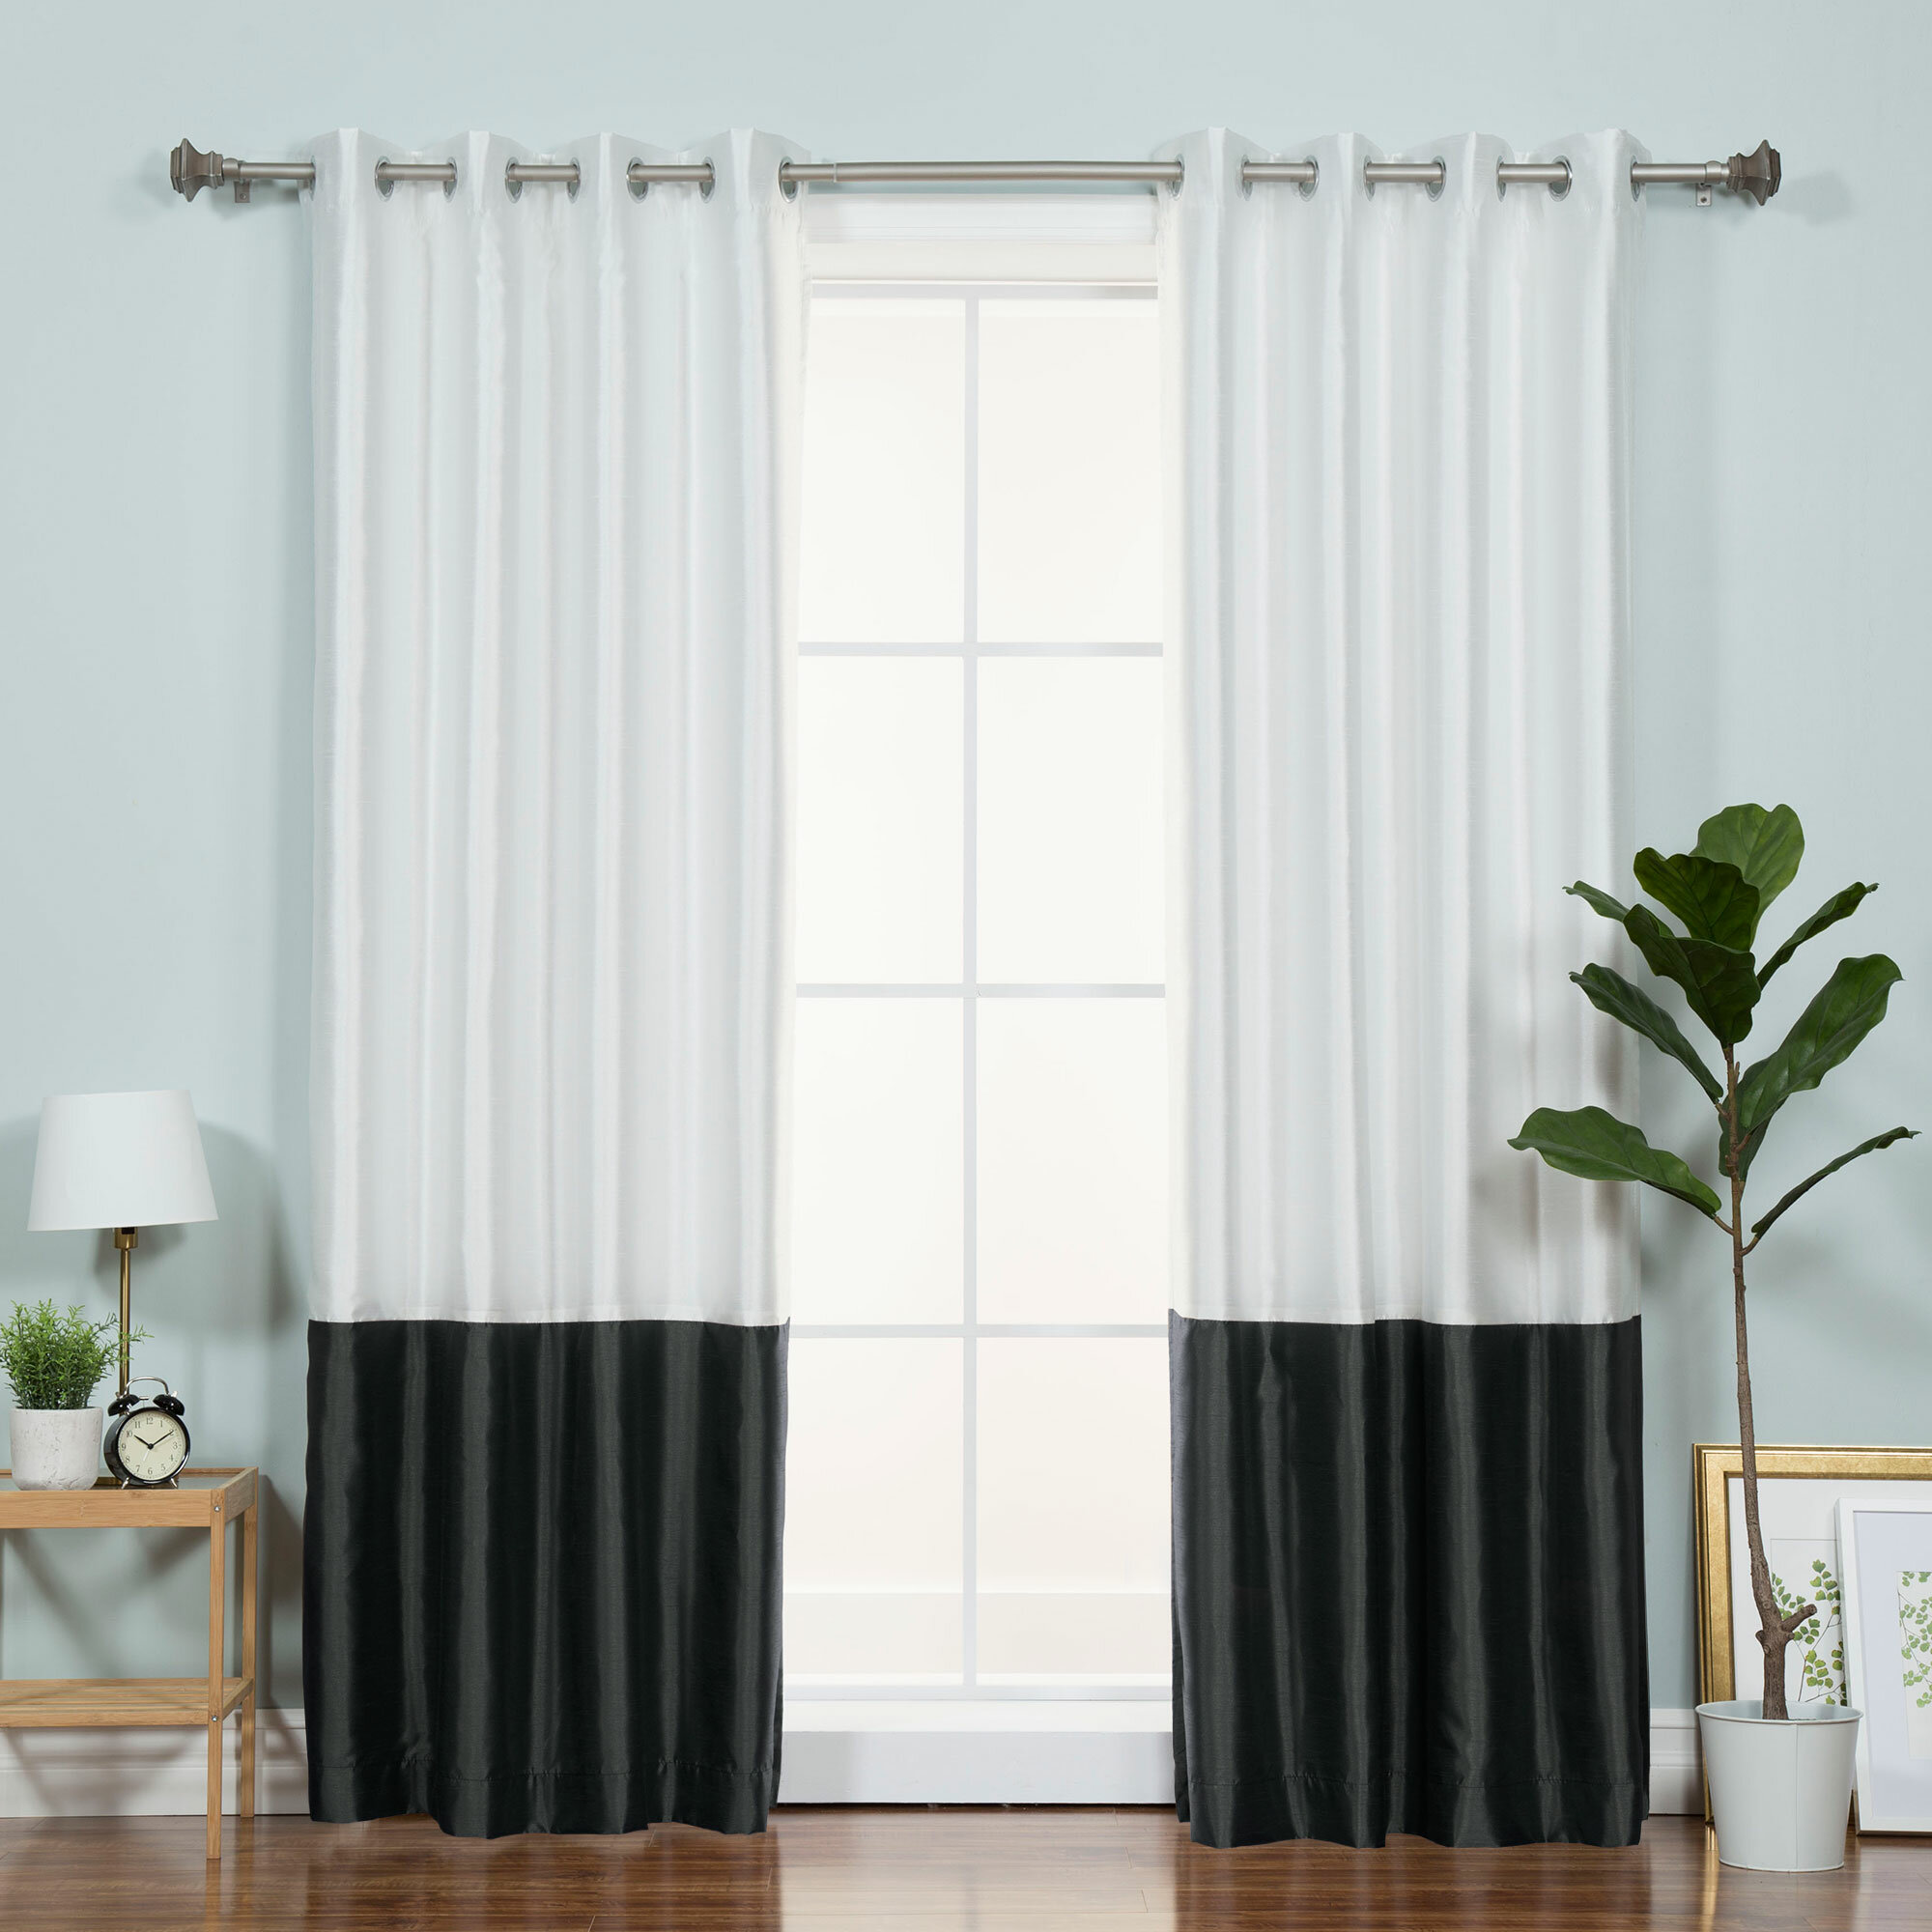 curtain curtains sidelight lace table domesticlacelacepatterns runner